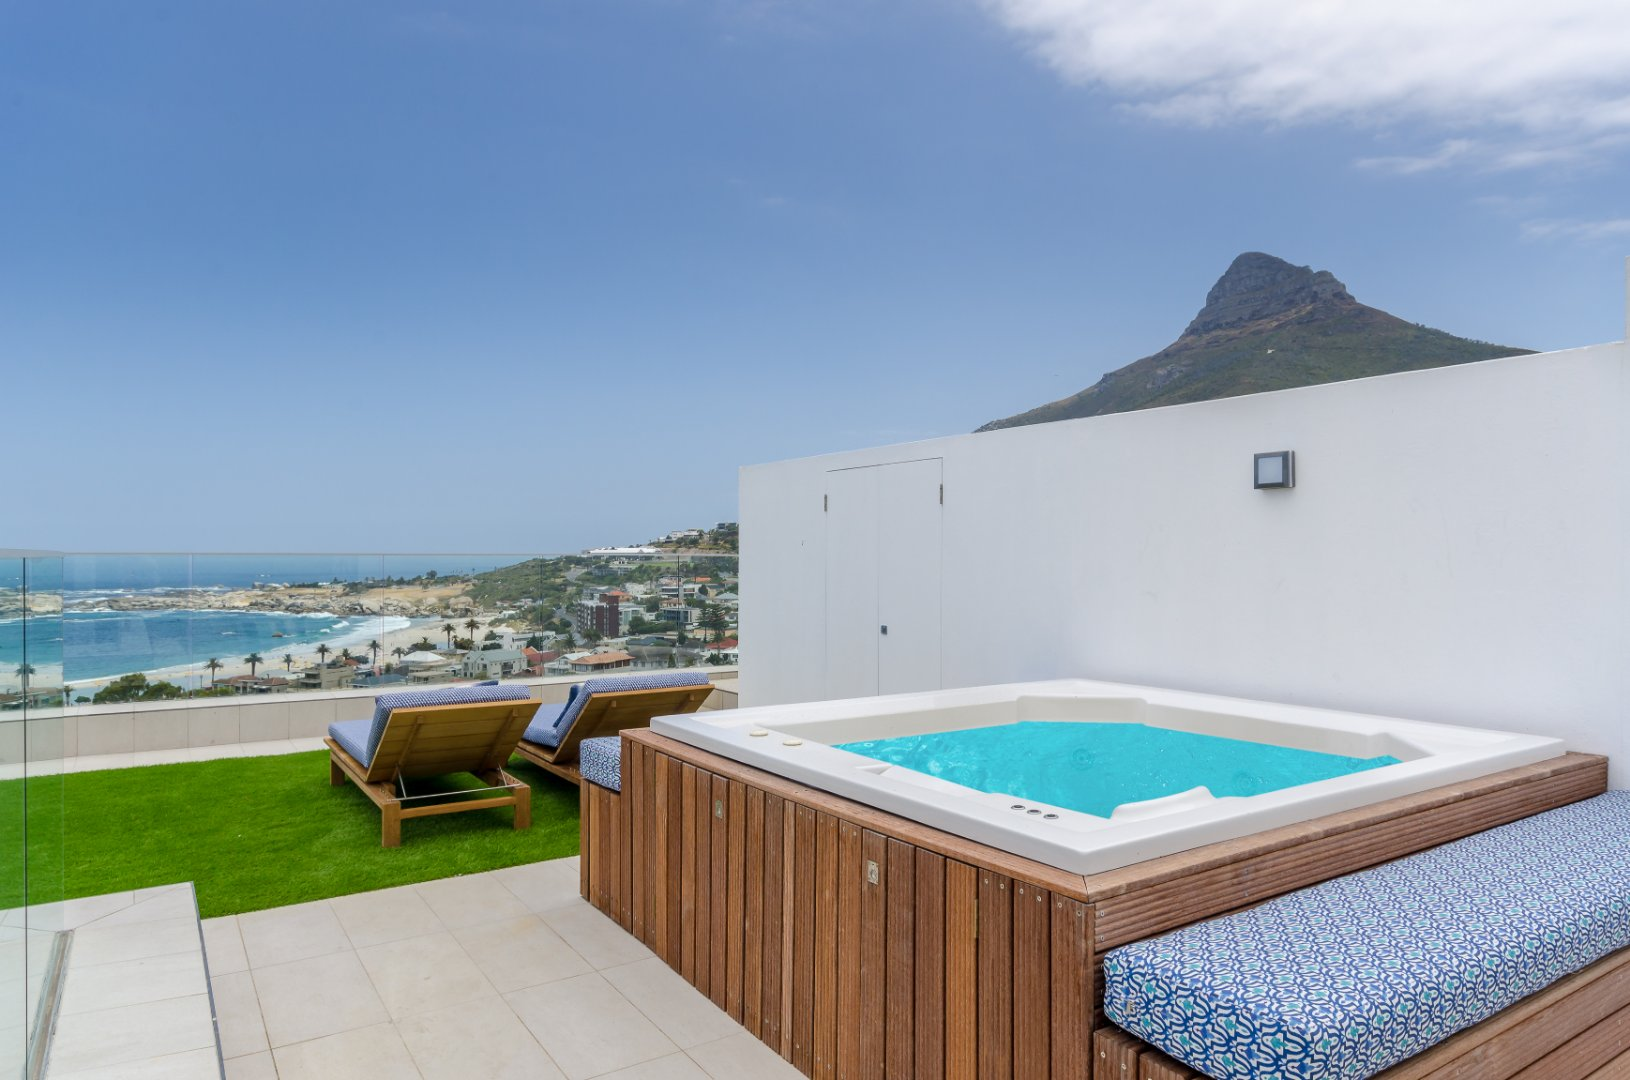 Stunning Ocean and Mountain views in this Camps Bay Villa